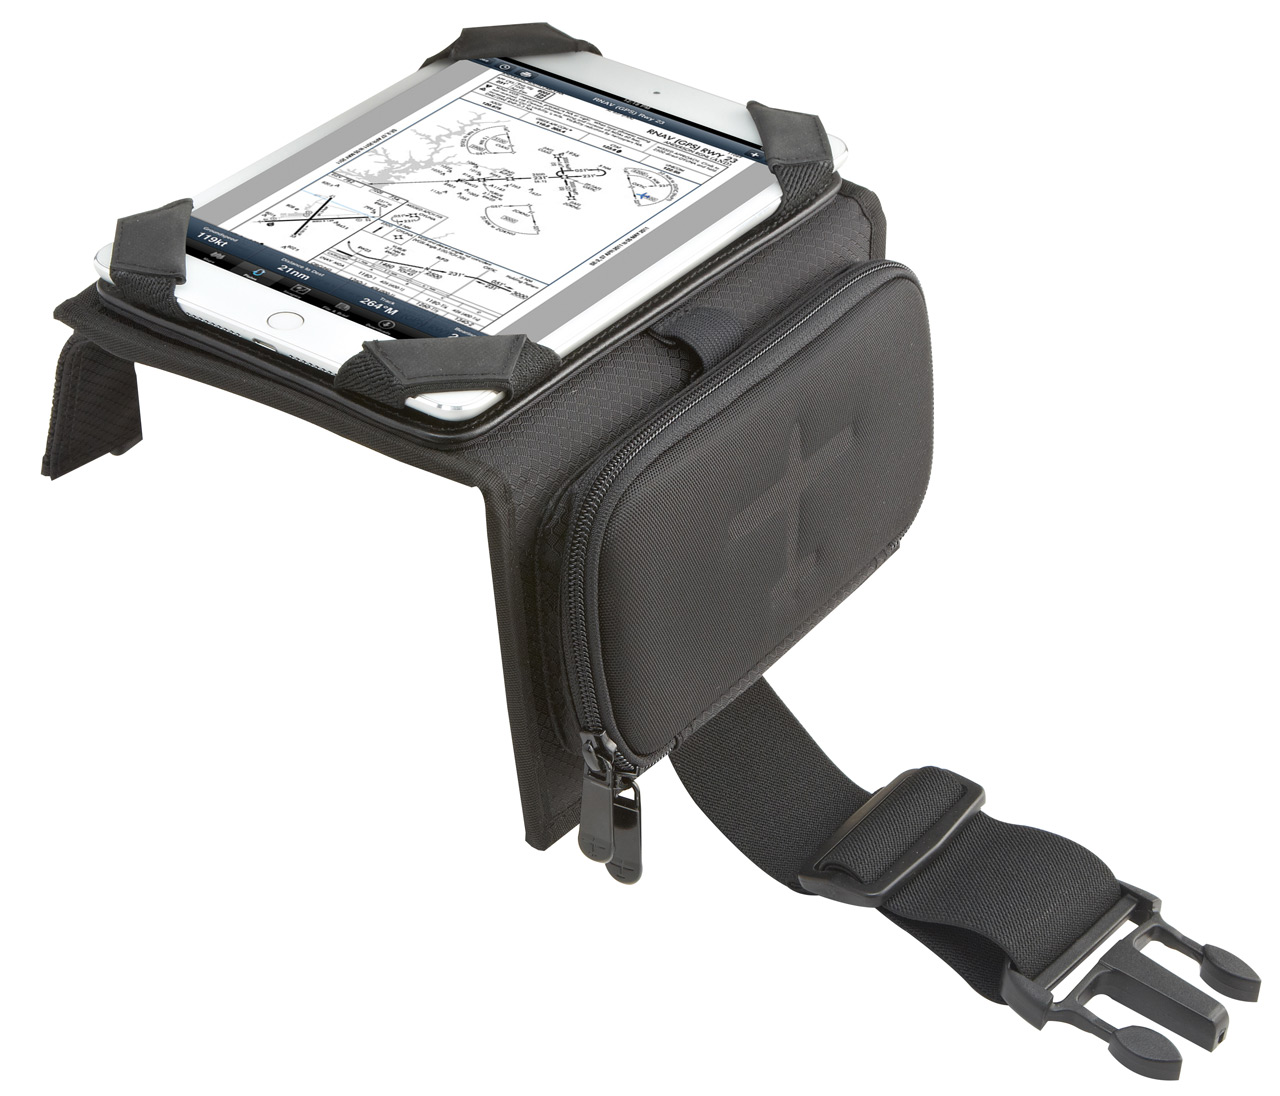 40faf7d78e1 Flight Outfitters iPad Kneeboard - Small. 0 Customer Reviews. Flight  Outfitters. Tap to expand